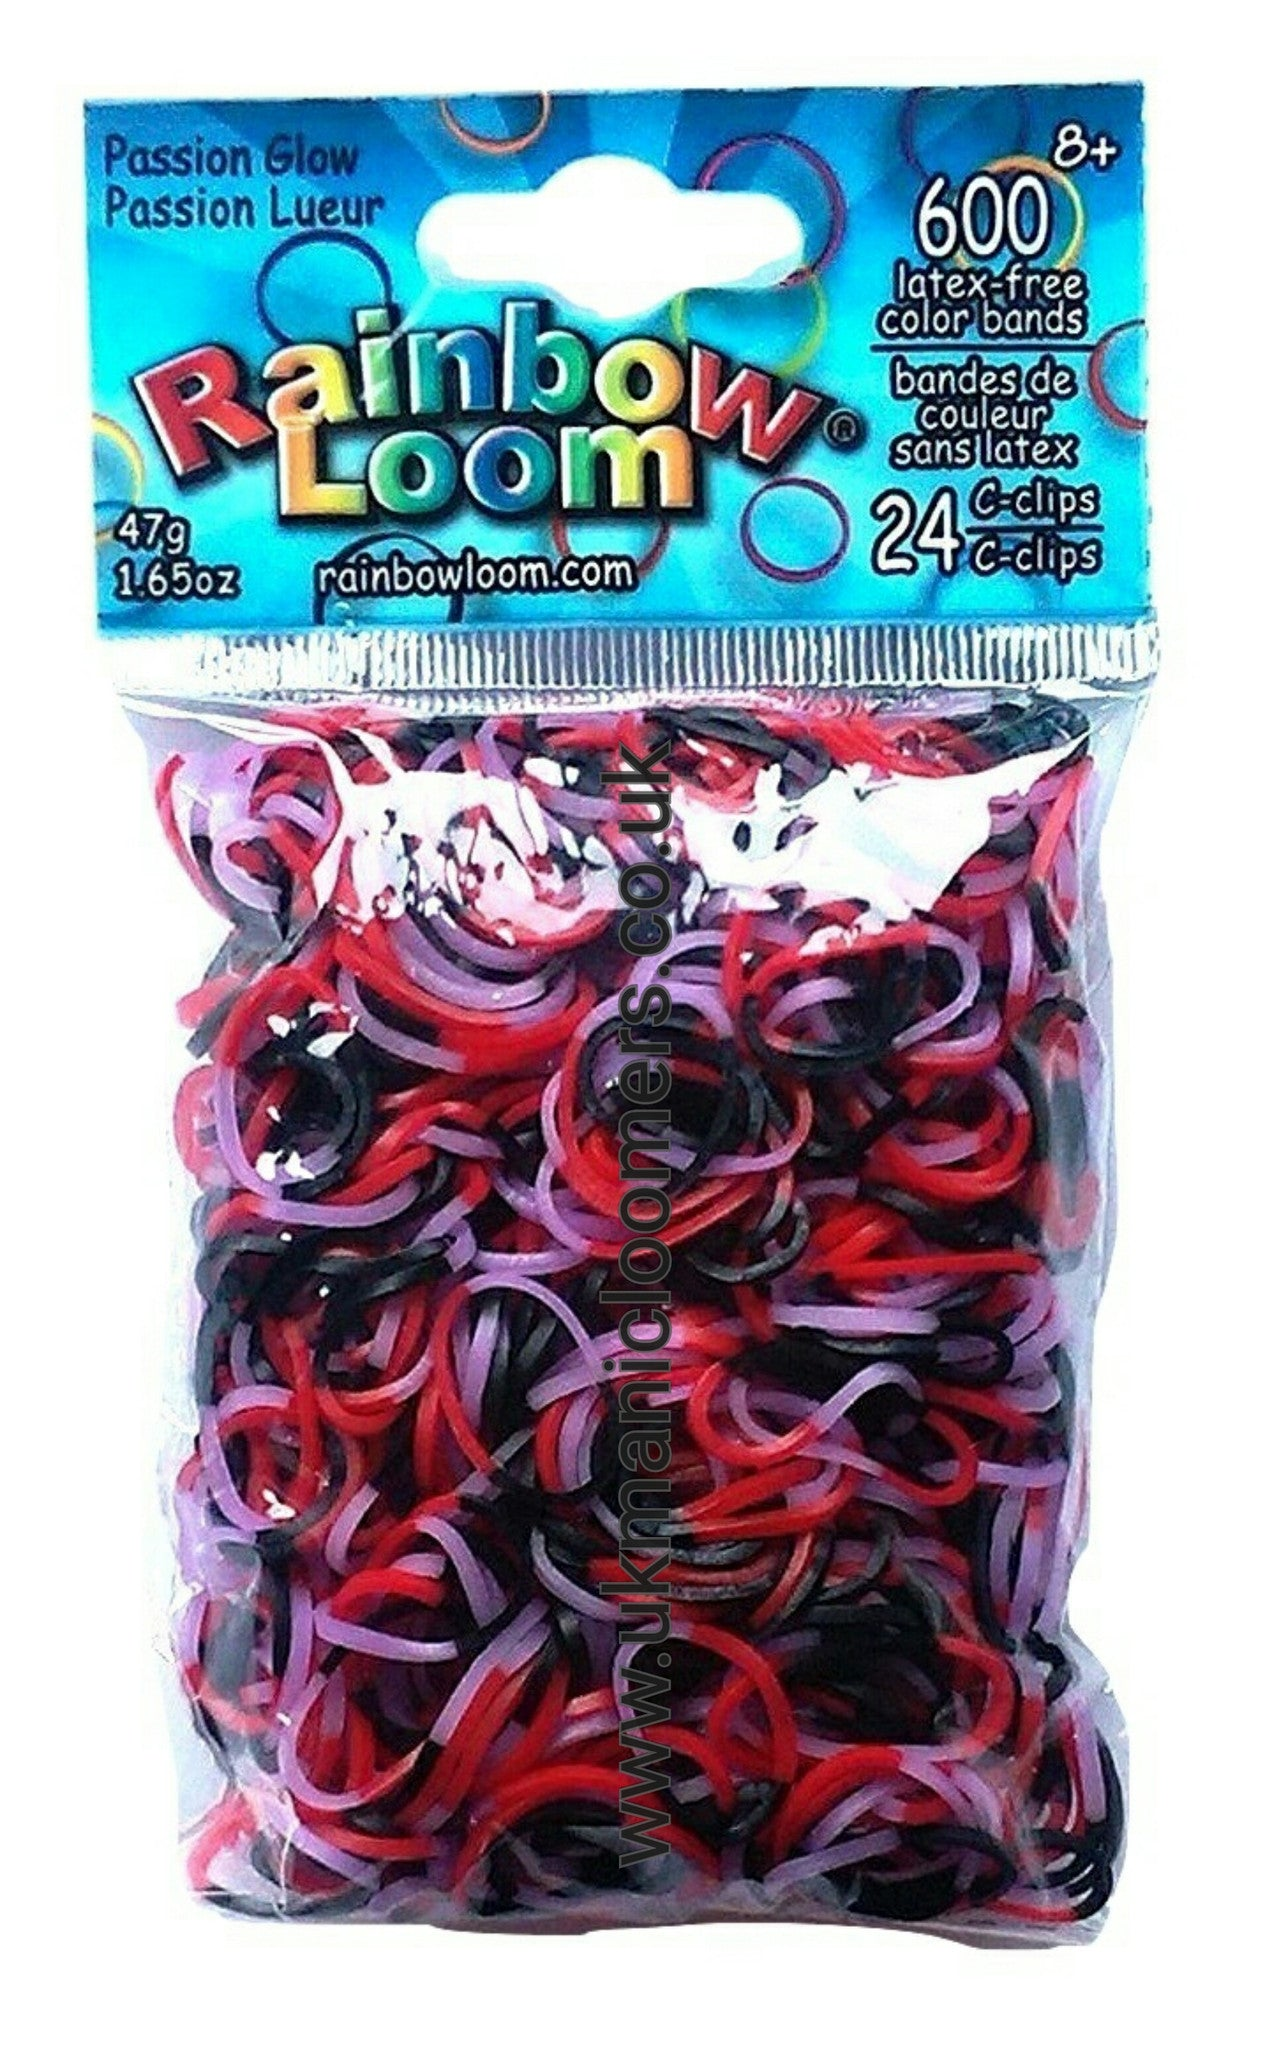 Passion (Glow) - UK Manic Loomer